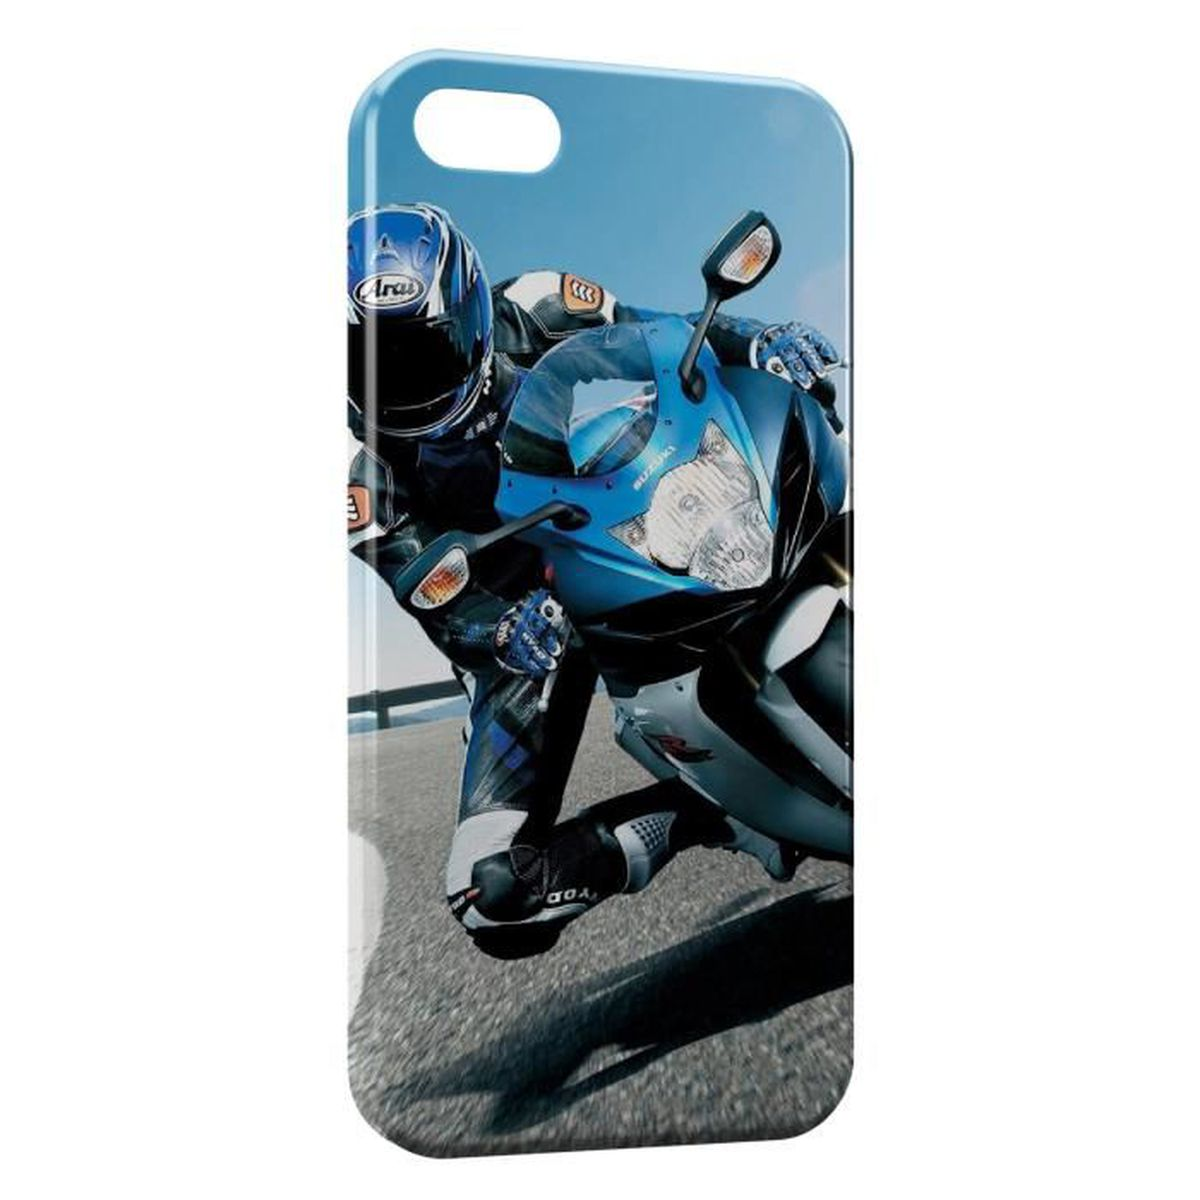 coque iphone 6 biker